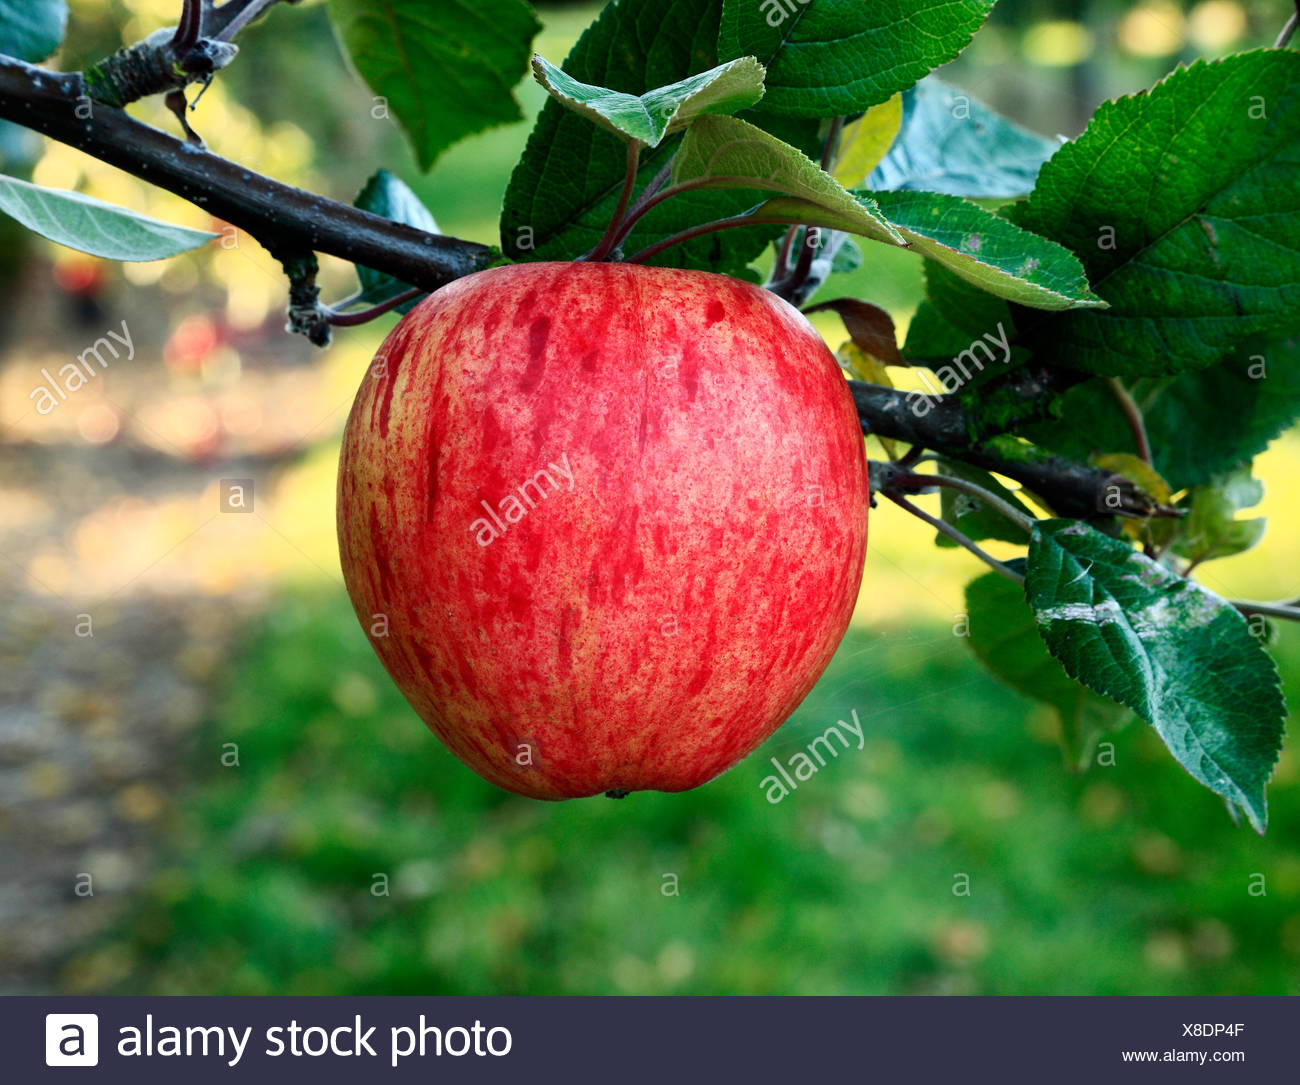 Apple 'Dr. Clifford', culinary variety, malus domestica, apples variety varieties growing on tree - Stock Image